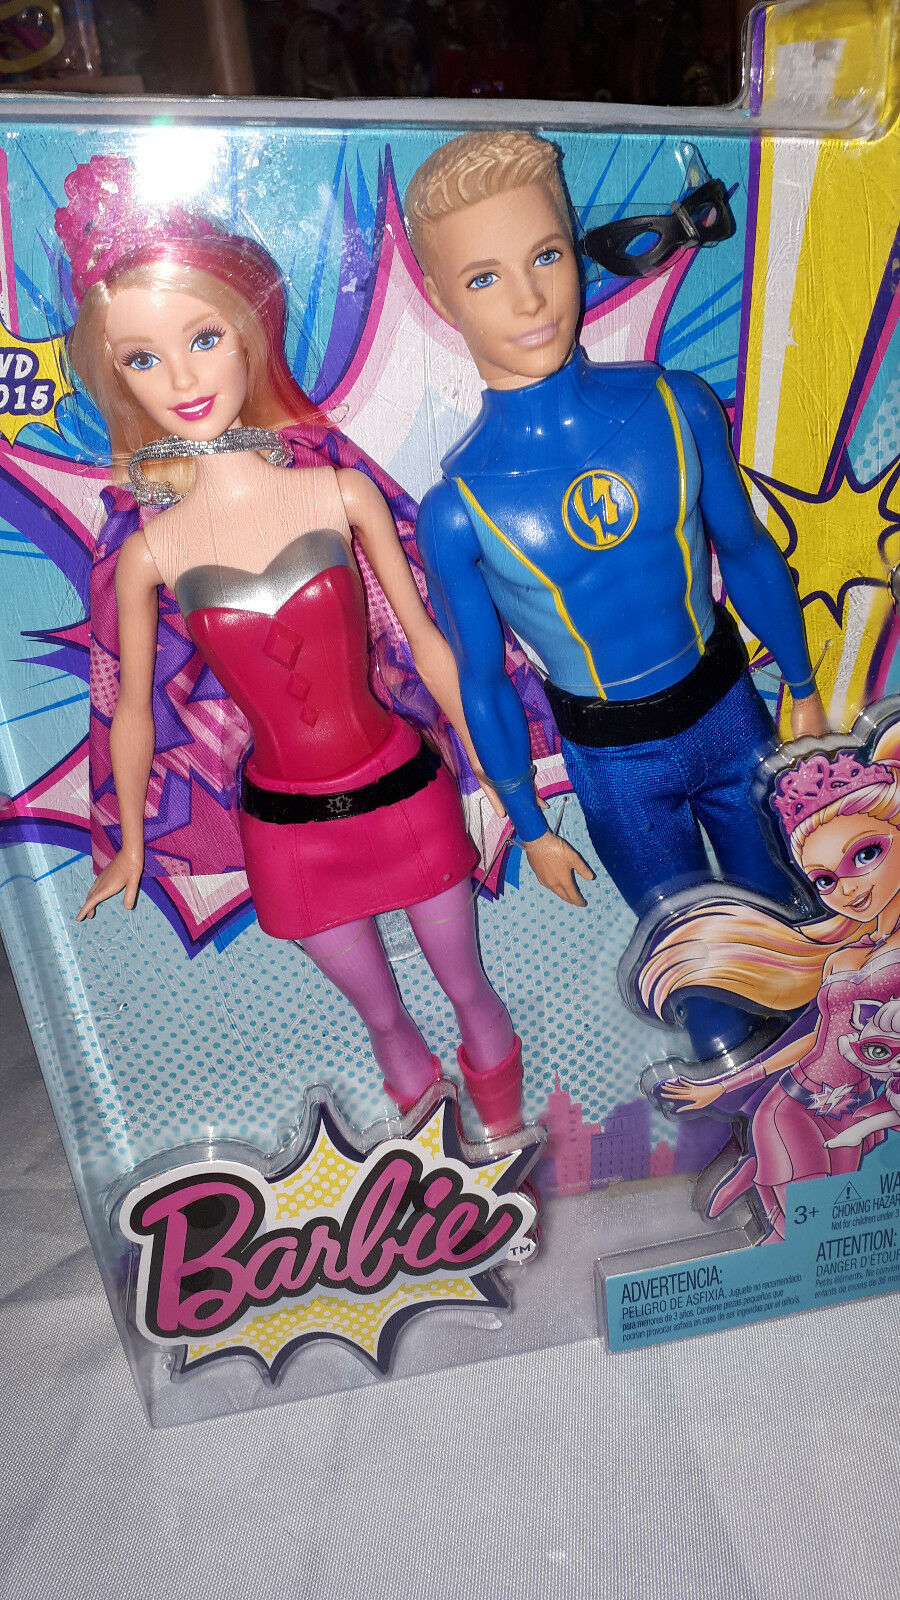 Die Superprinzessin Puppe Ovp Exklusives Set mit Super Barbie und Super Ken